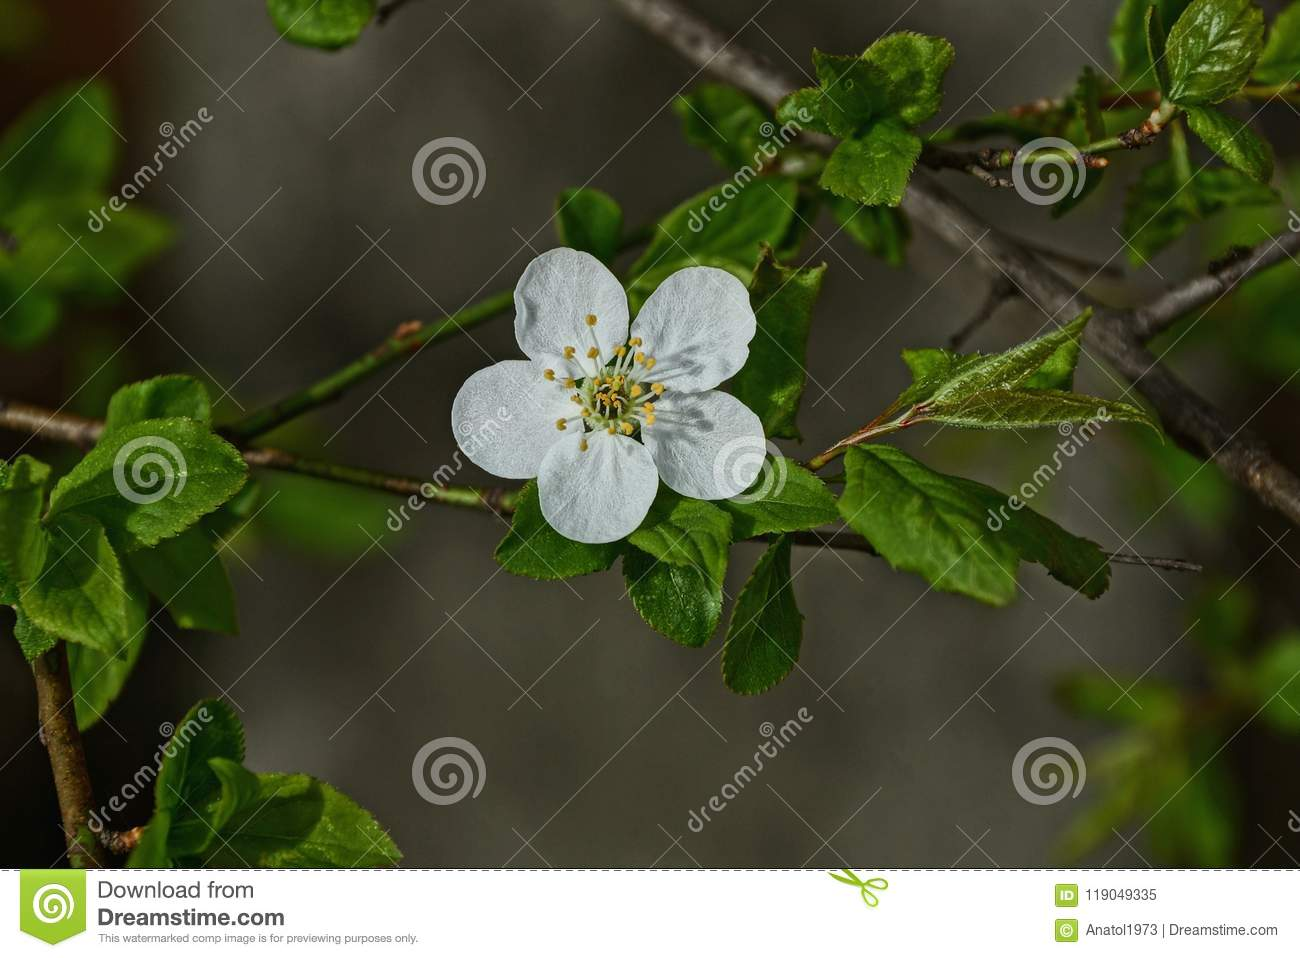 Small white cherry blossom on a branch with green leaves